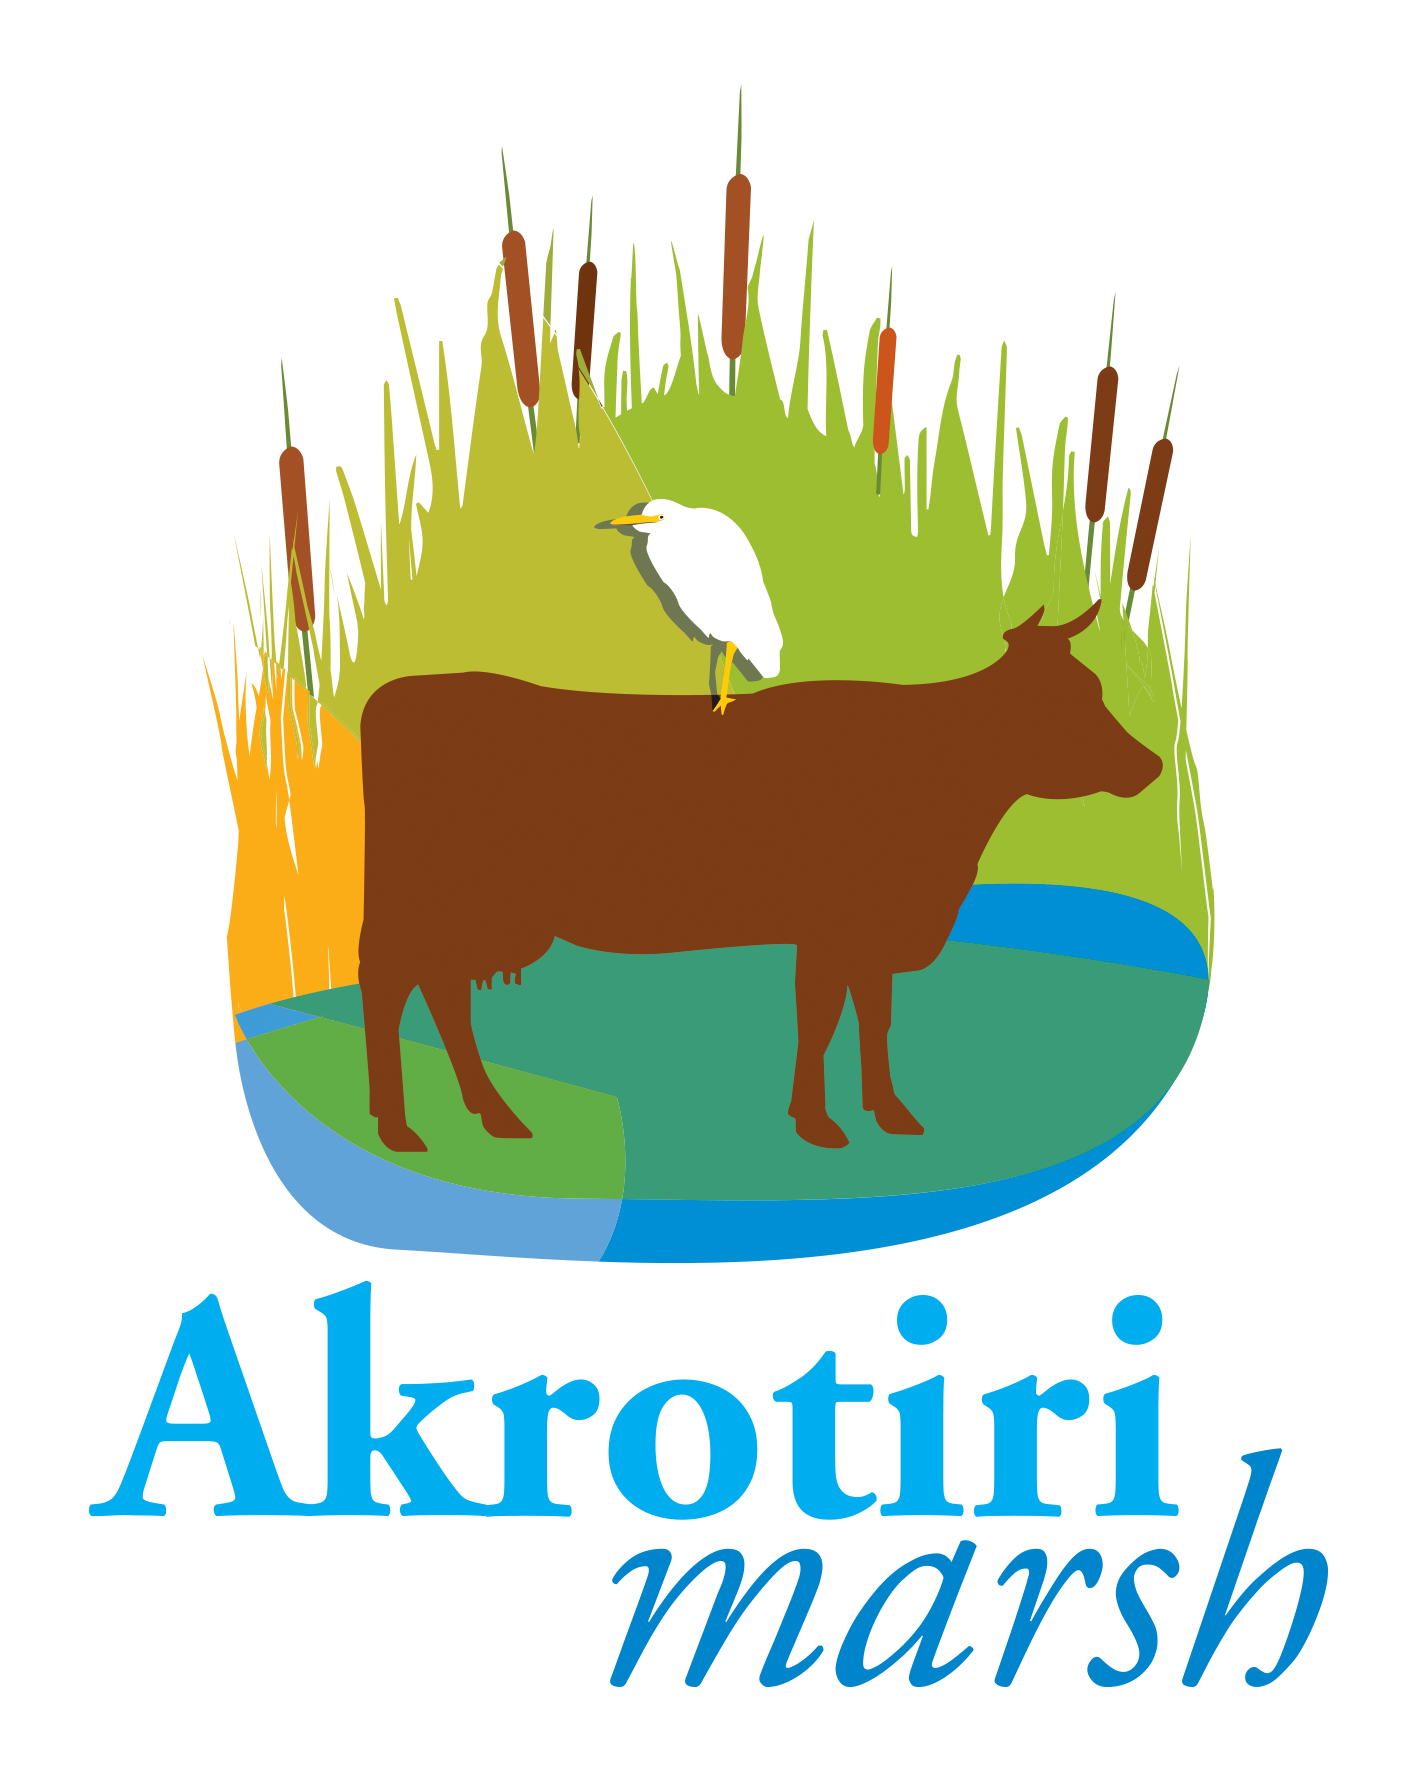 Expected results akrotiri. Clipart grass marsh